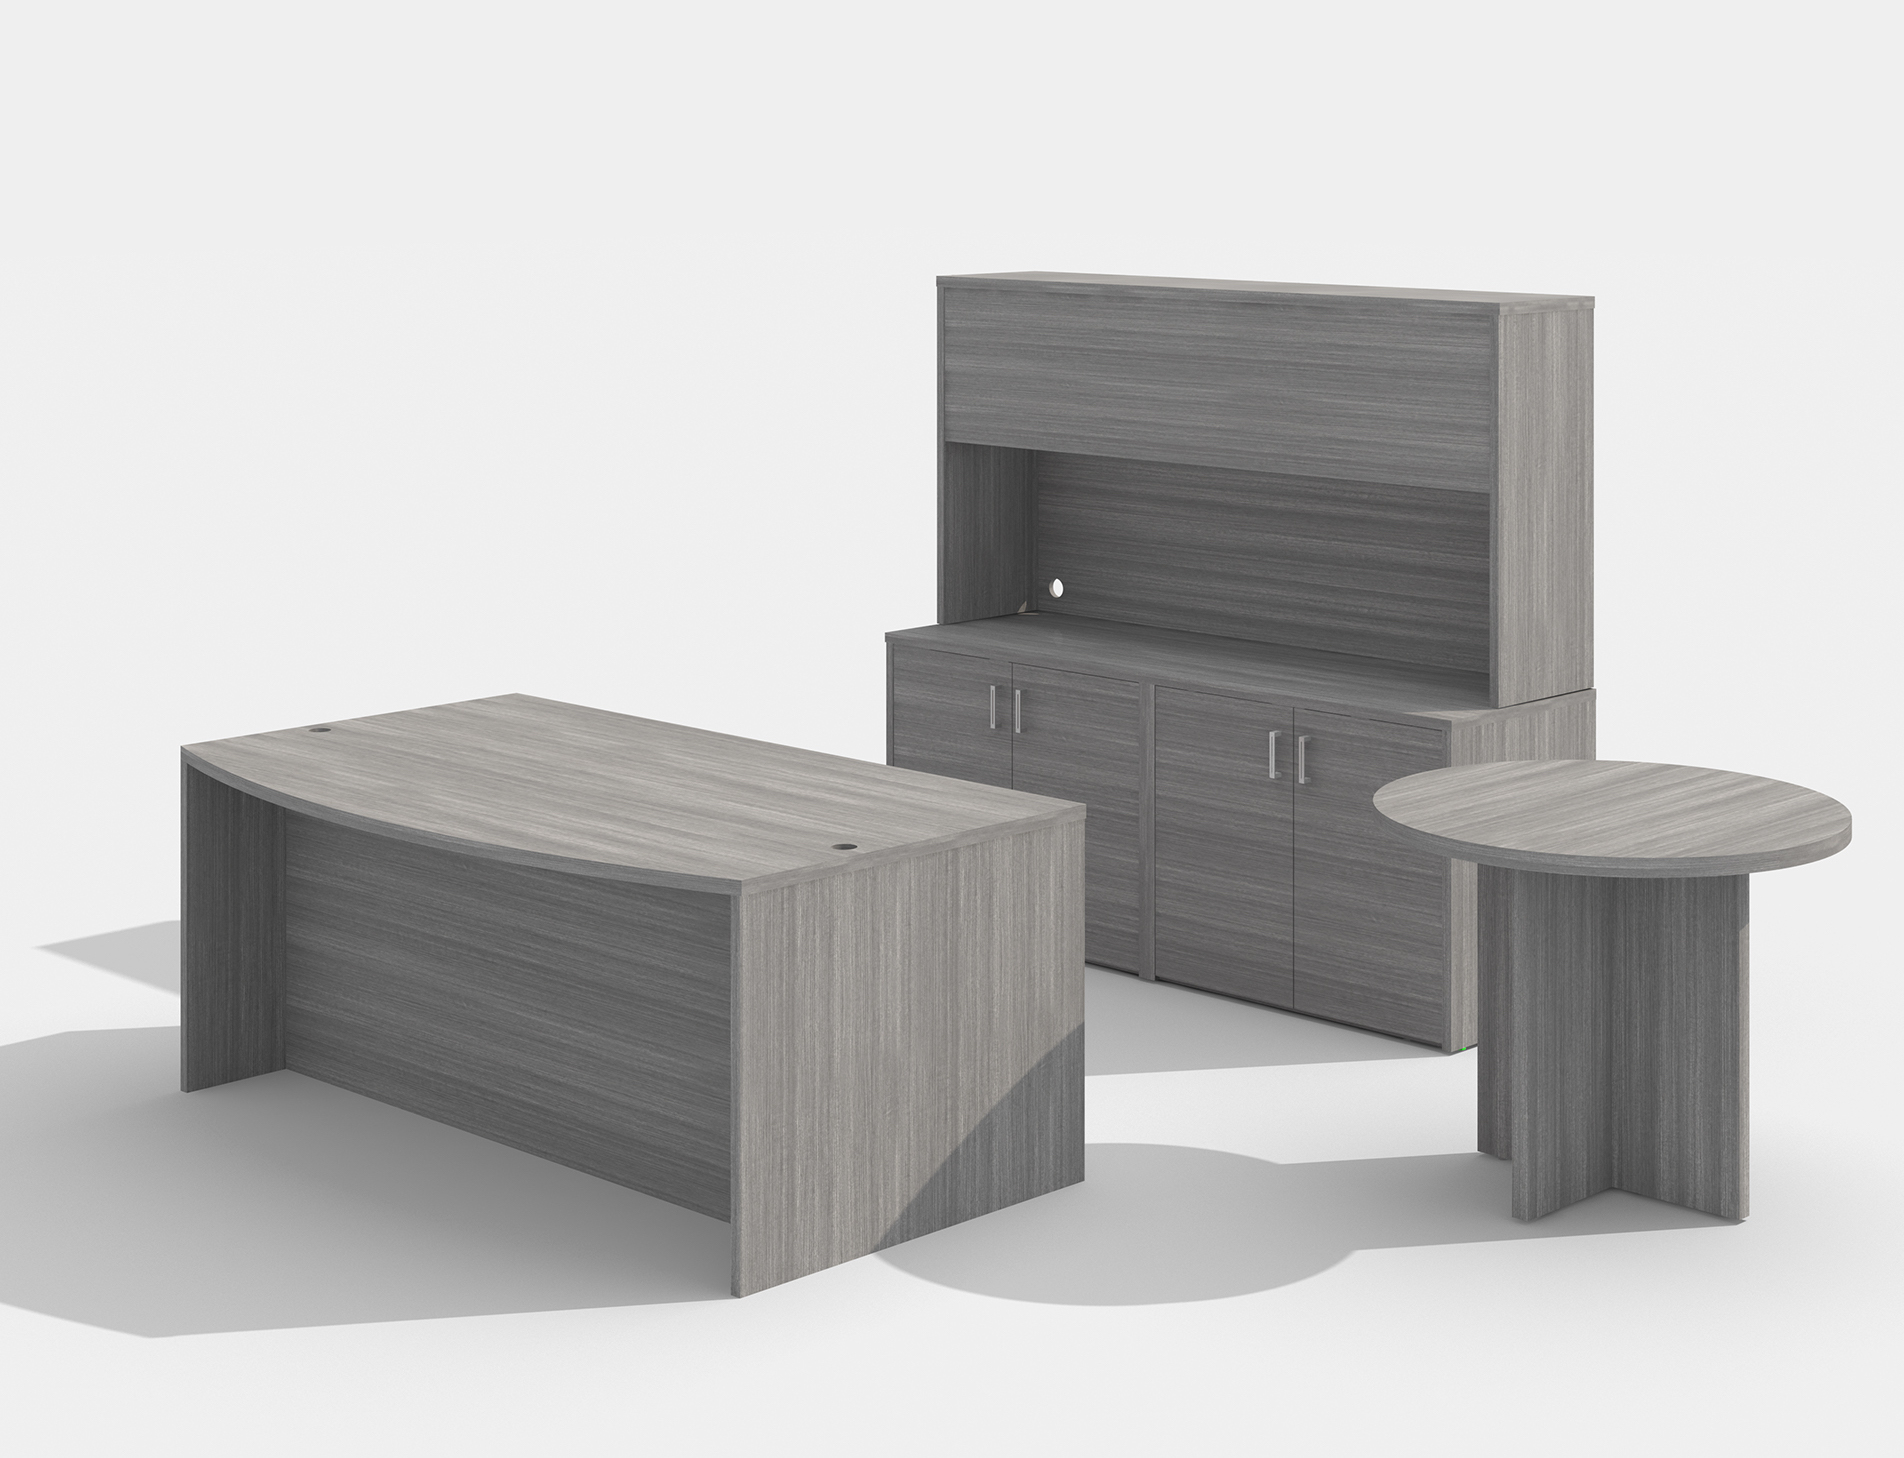 am-383n amber desk set with a722 side table in valley grey